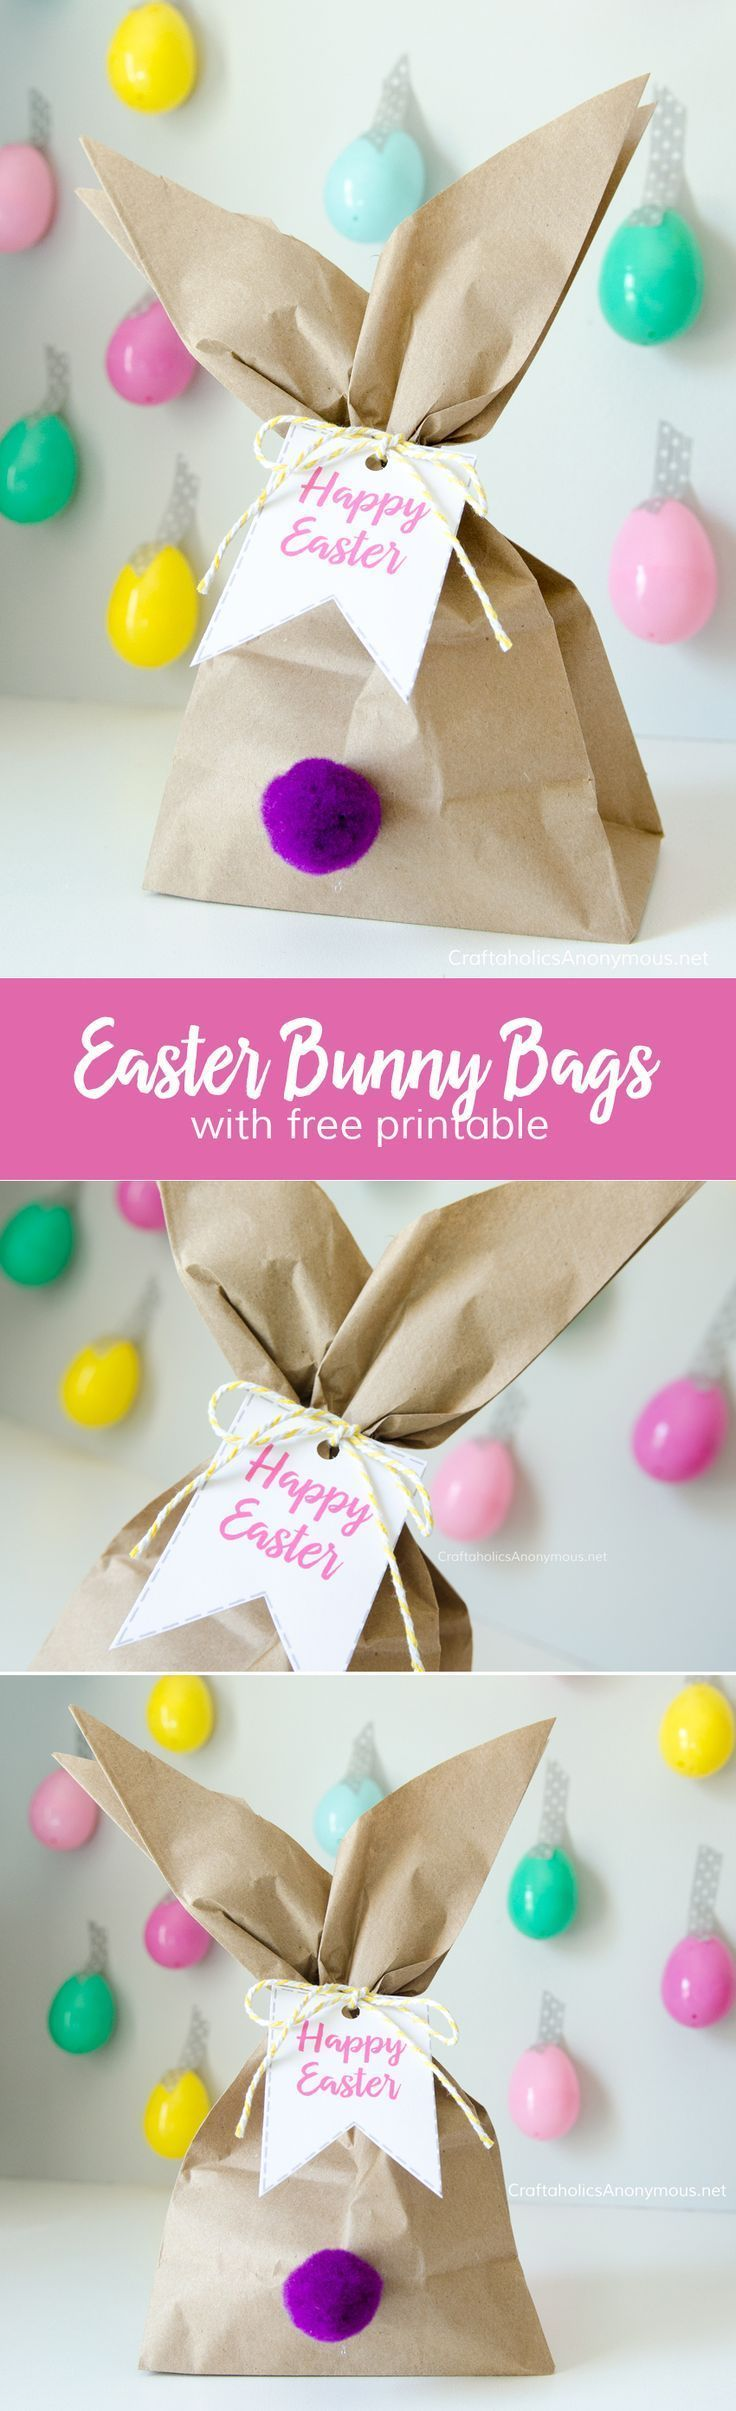 81 best spring fling images on pinterest spring activities easy easter bunny gift bags idea make great favors gifts decor negle Images